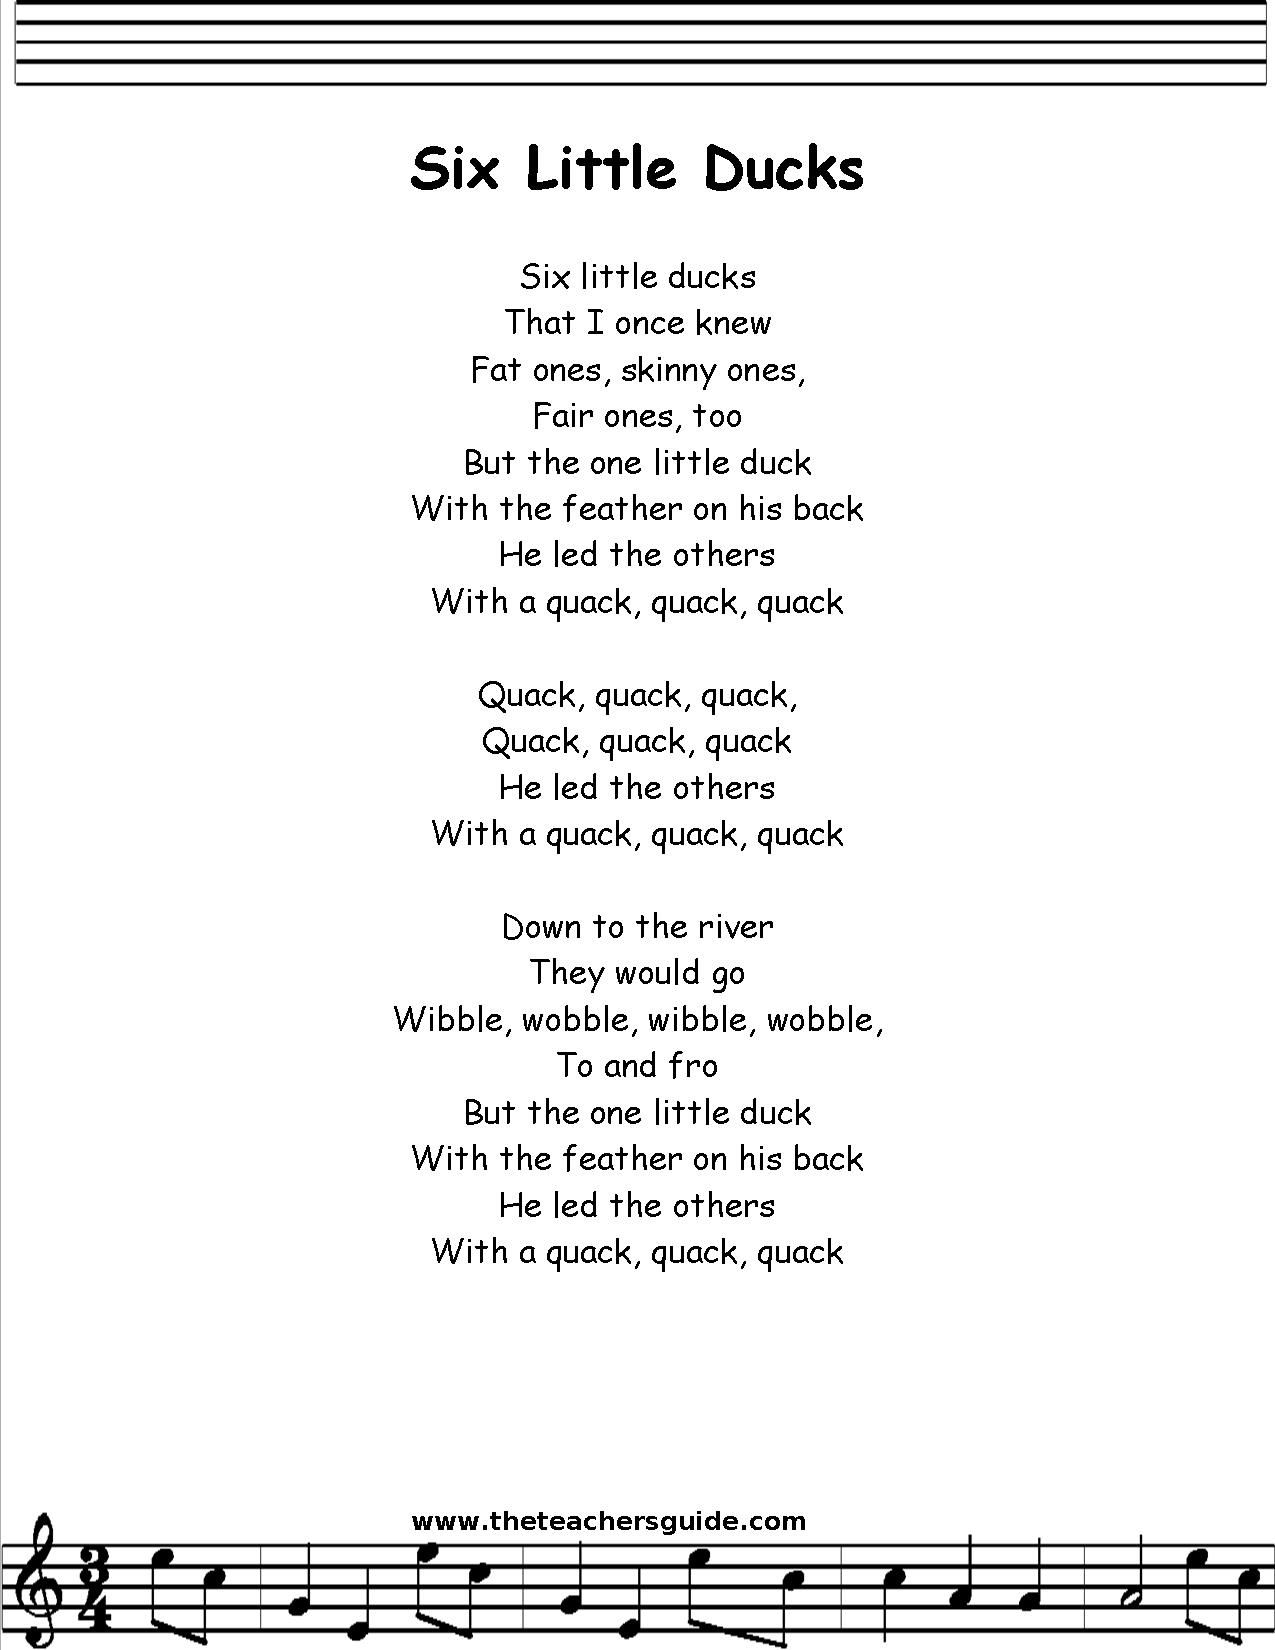 Six Little Ducks Lyrics Printout